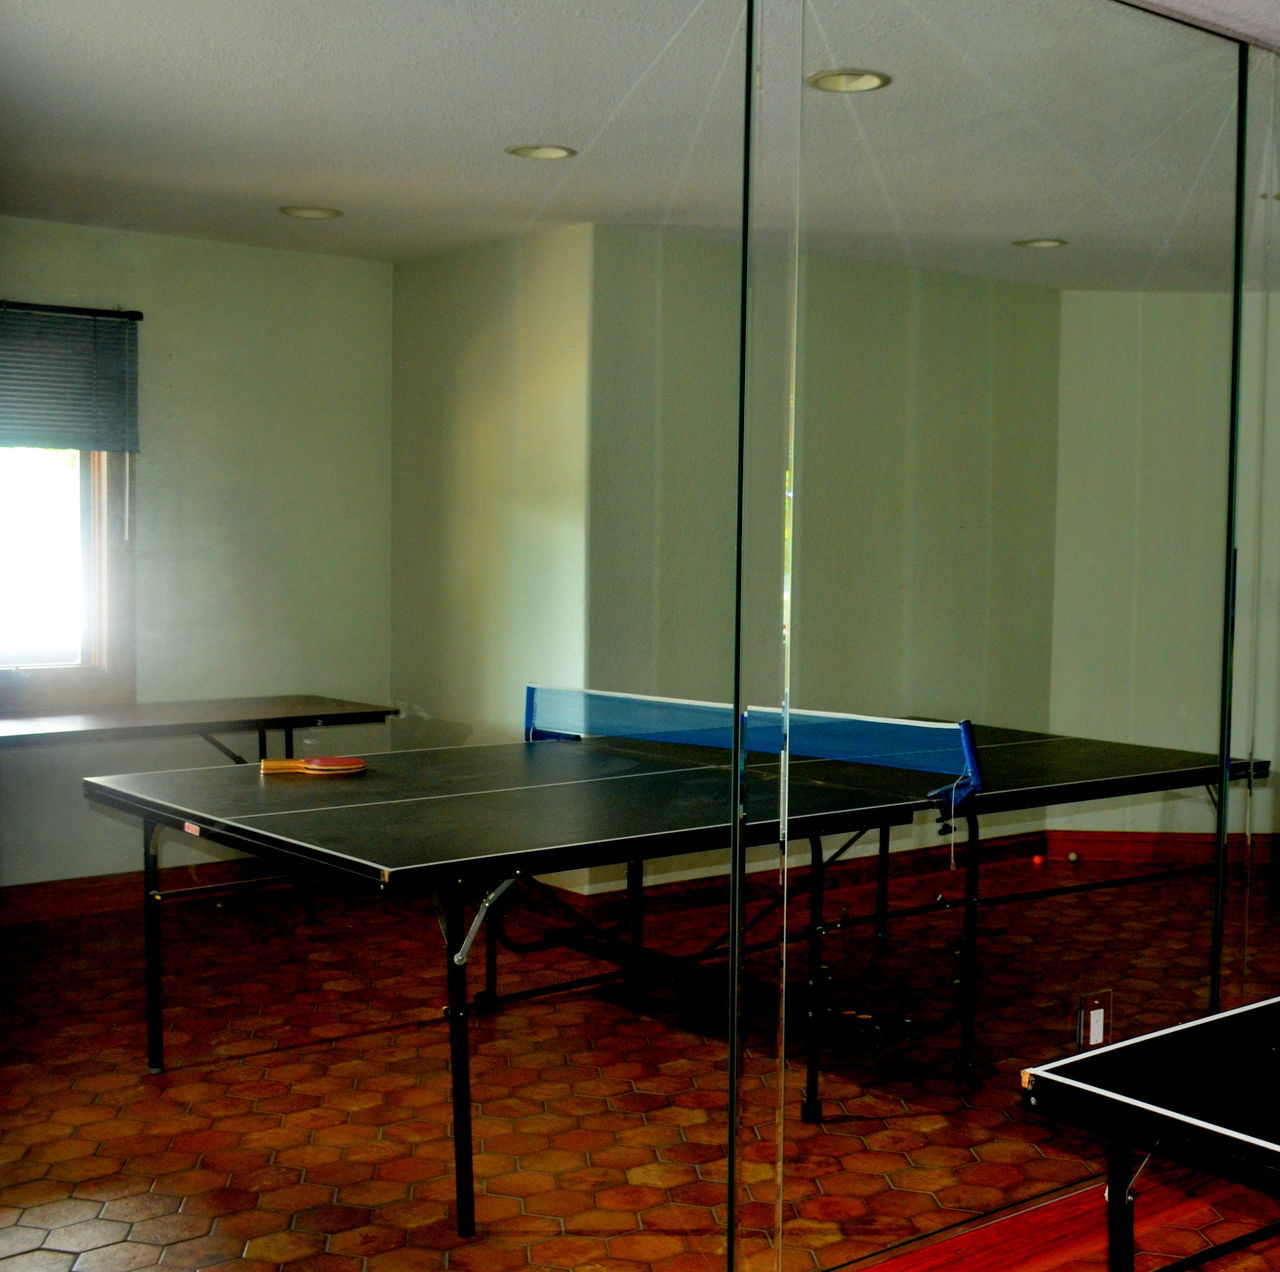 empty, absence, indoors, table, no people, modern